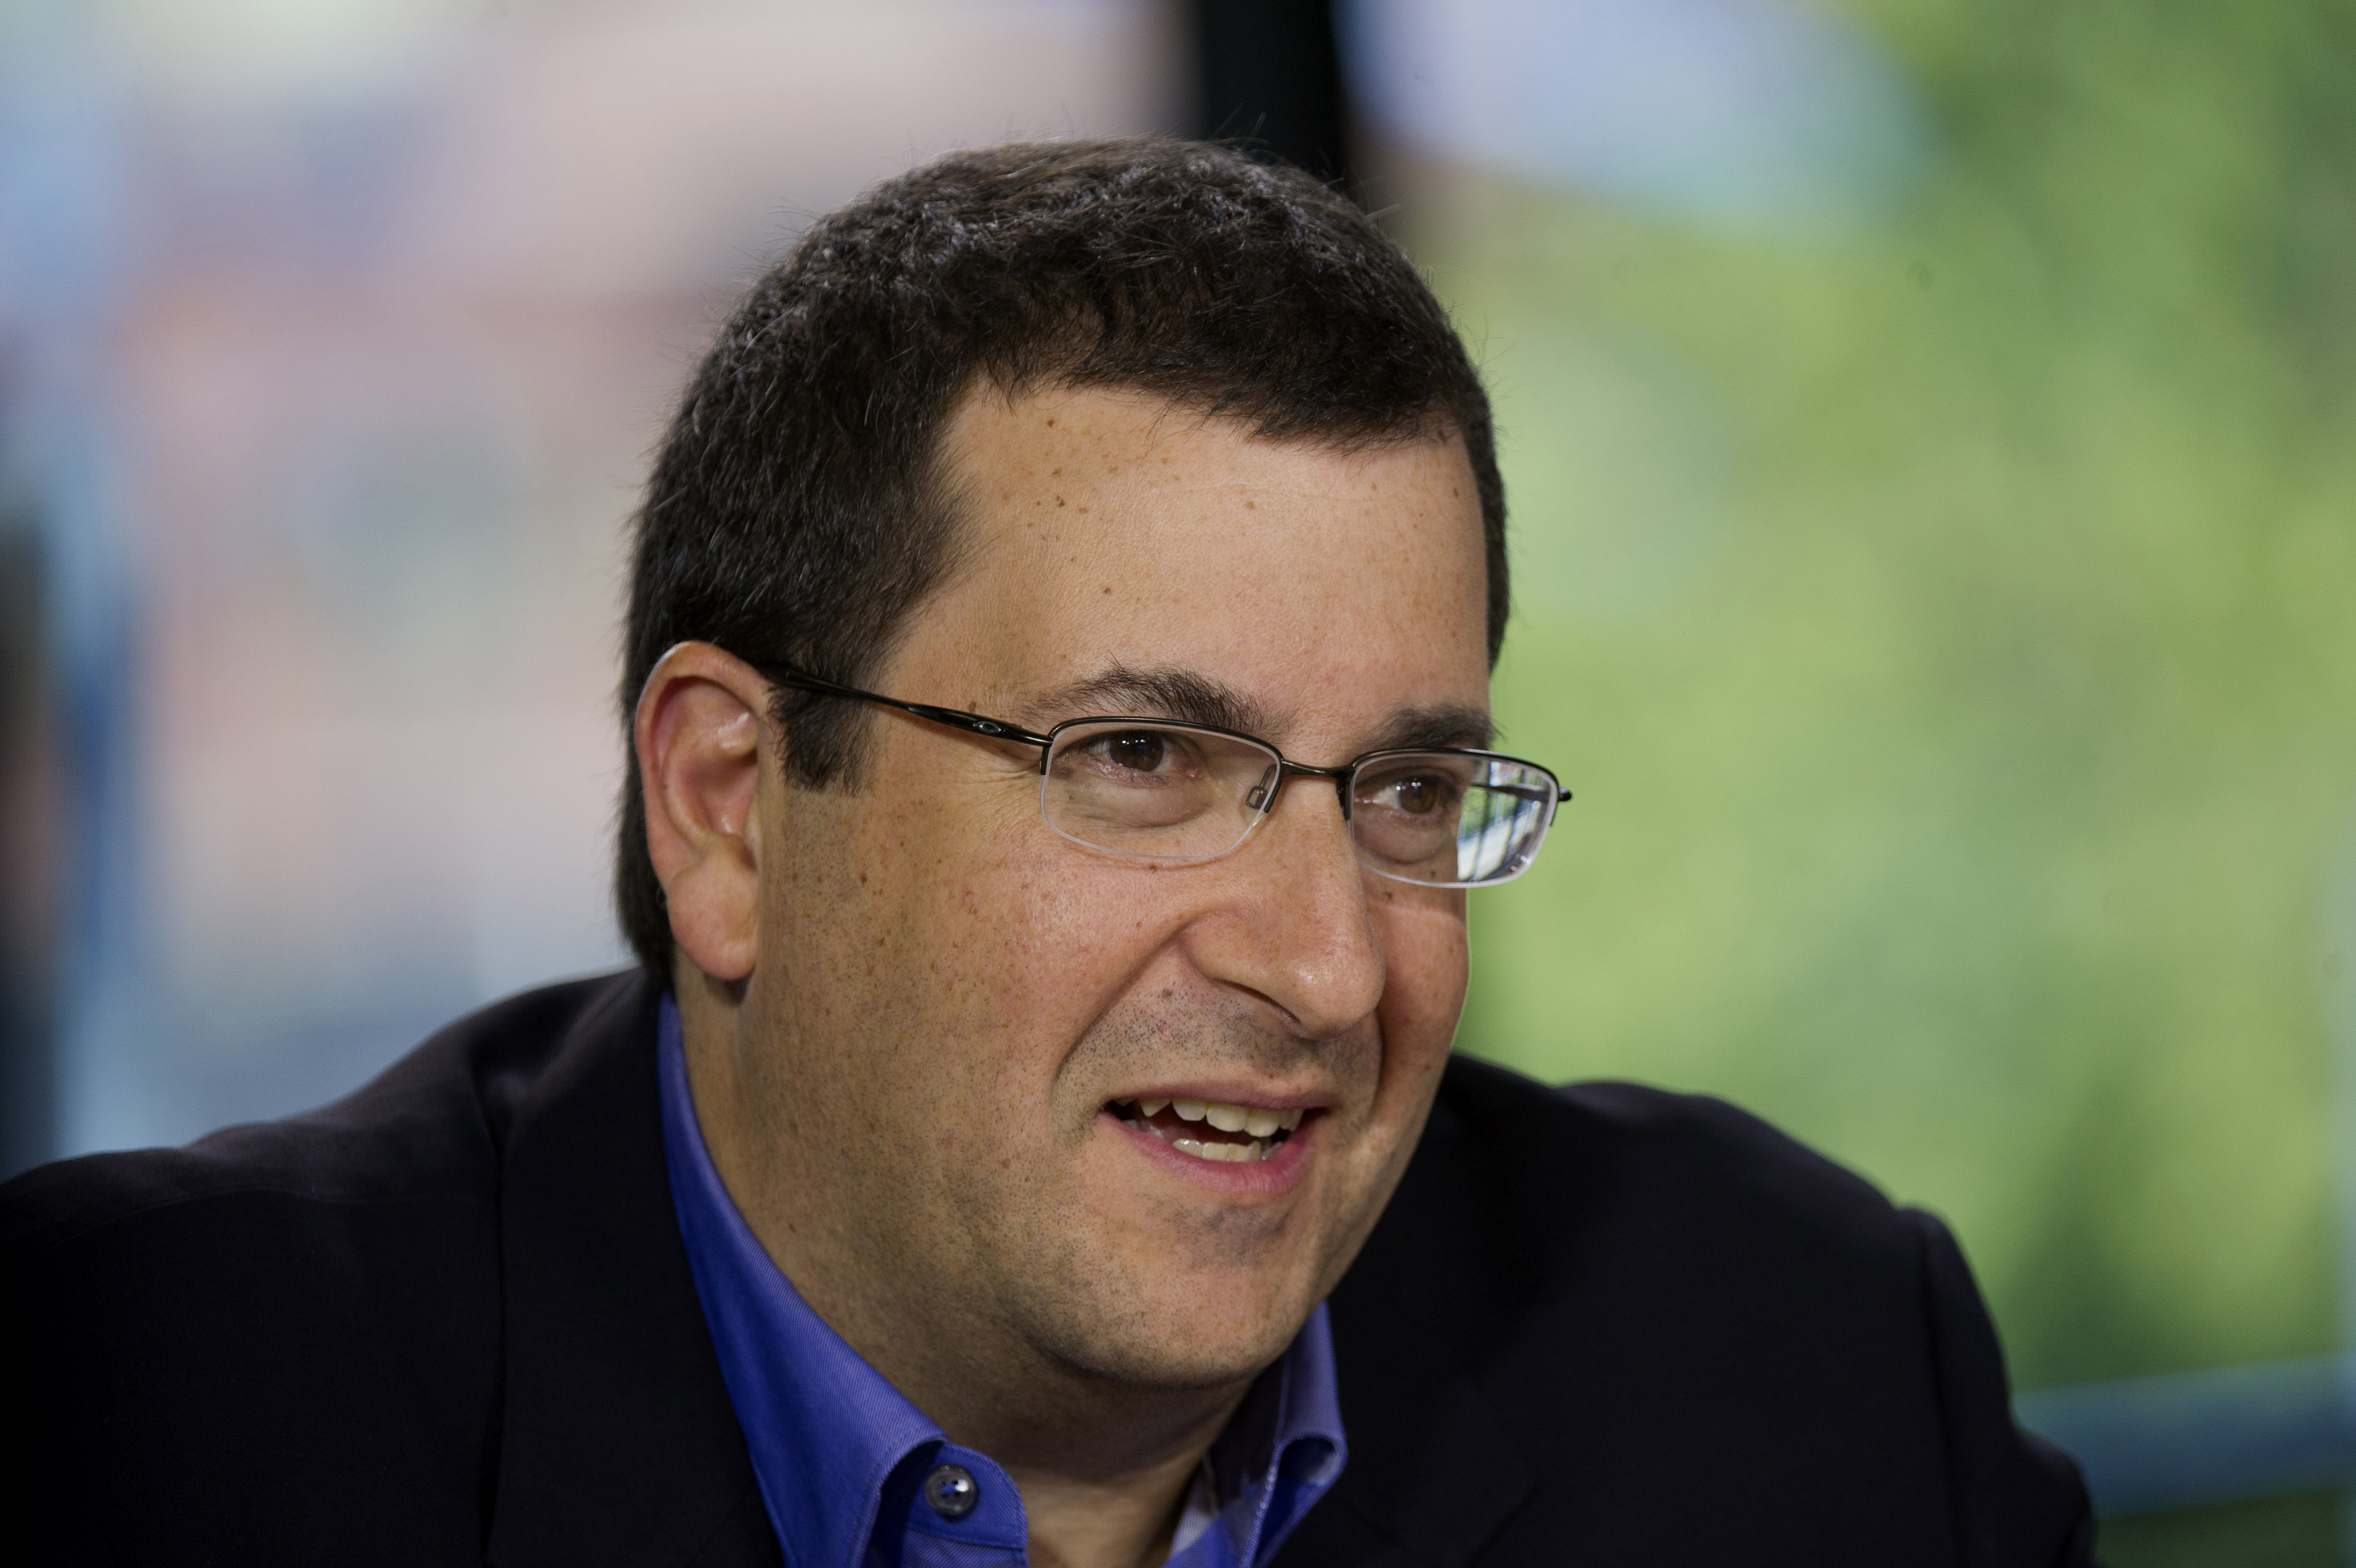 David  Dave  Goldberg, chief executive officer of SurveyMonkey.com LLC, speaks during a Bloomberg West Television interview in San Francisco, on July 29, 2014.